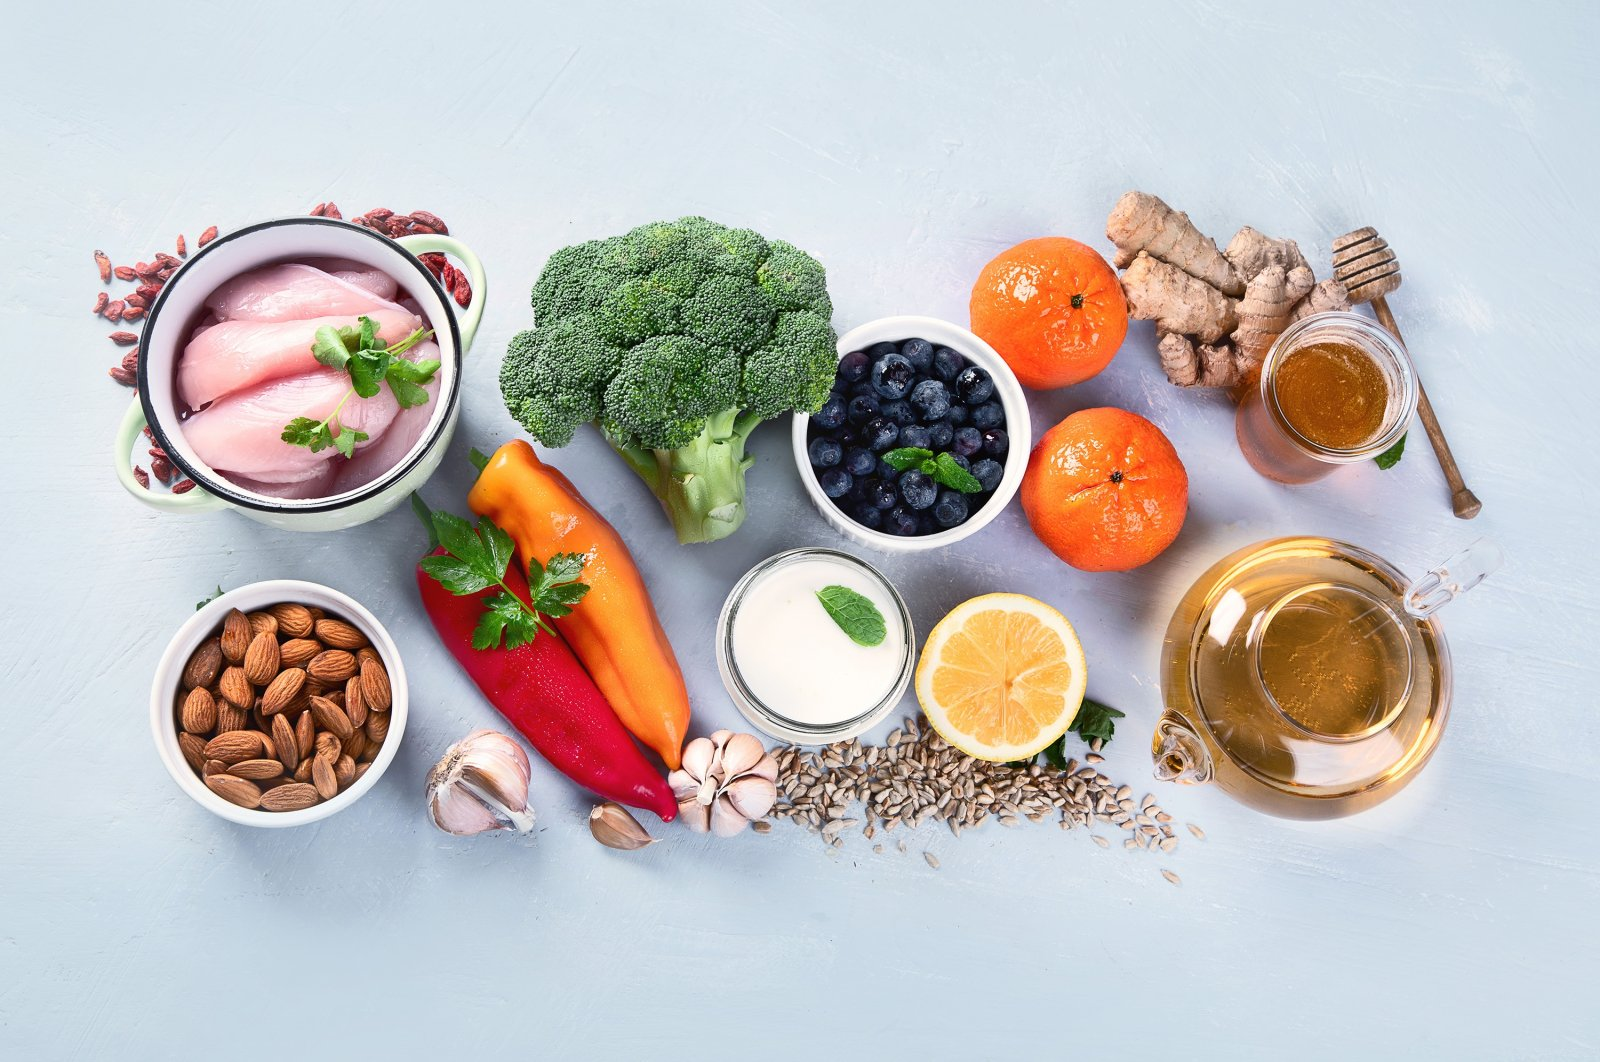 Eating certain foods could help keep your immune system strong this flu season. (Shutterstock Photo)